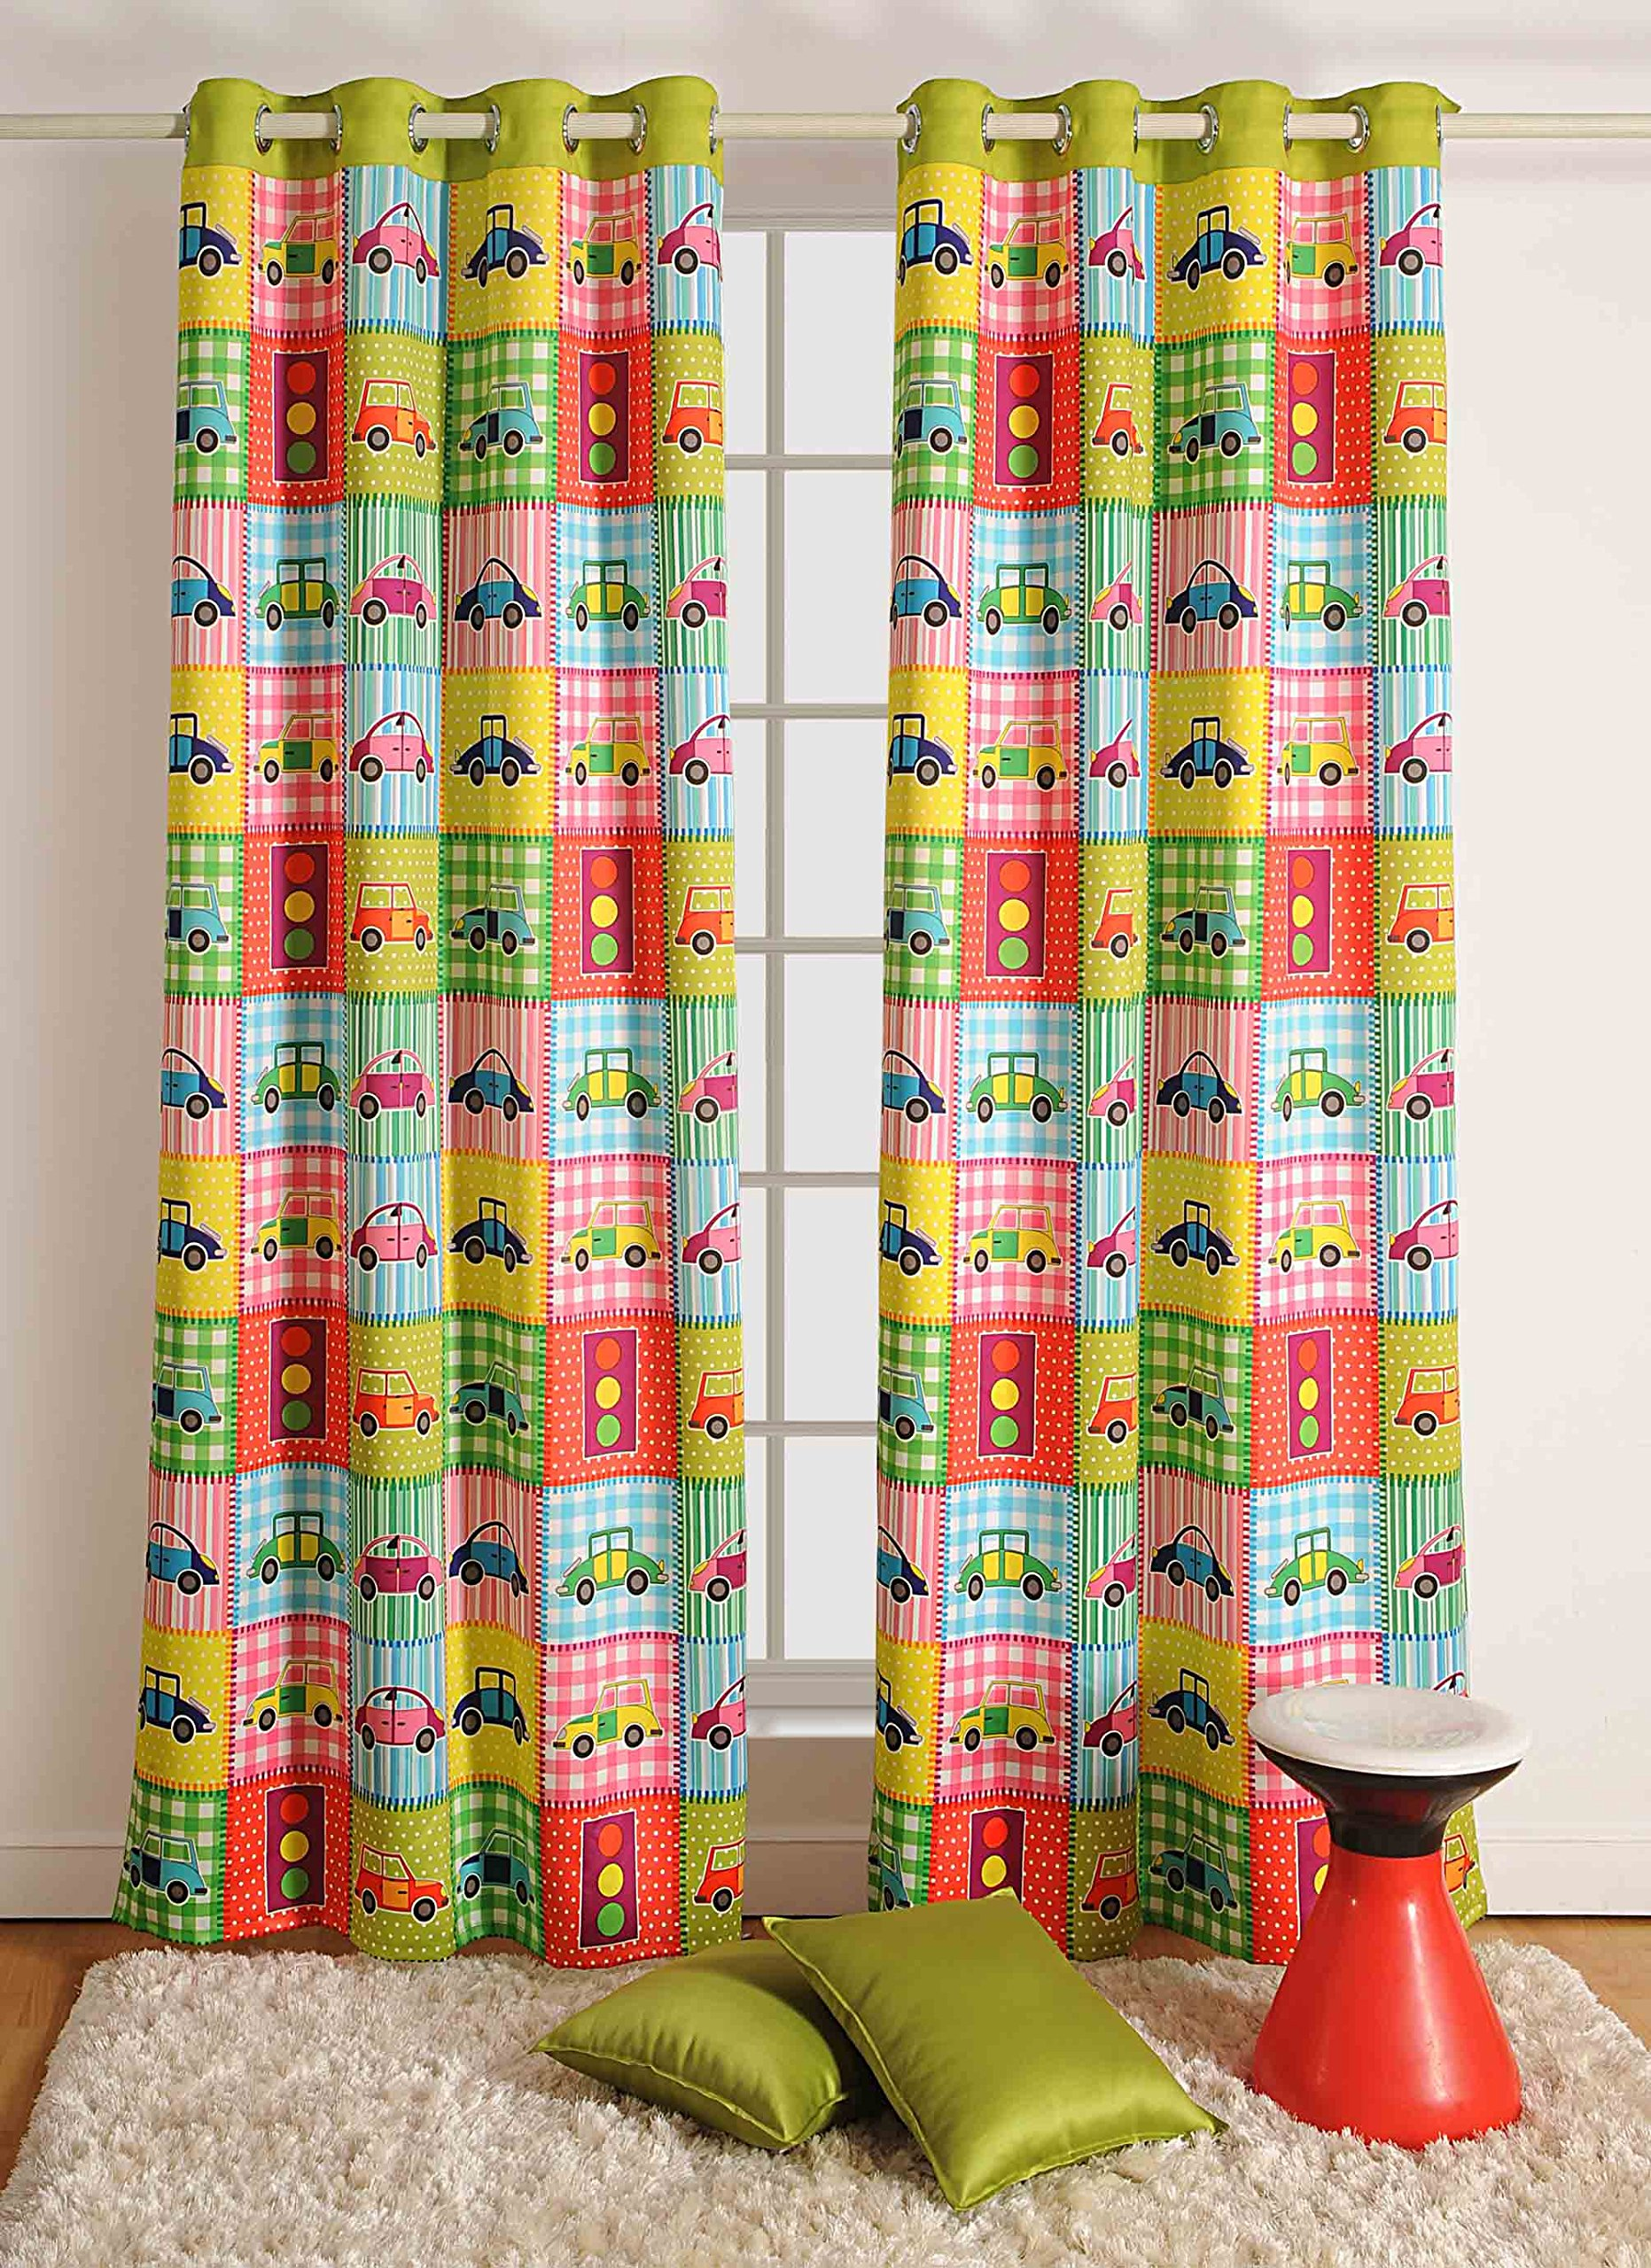 Blackout Polysatin Window Curtains for Boys Rooms -Automobile Digital Print - Set of 2 48''x 60'' Curtain Panels with Silver Grommets